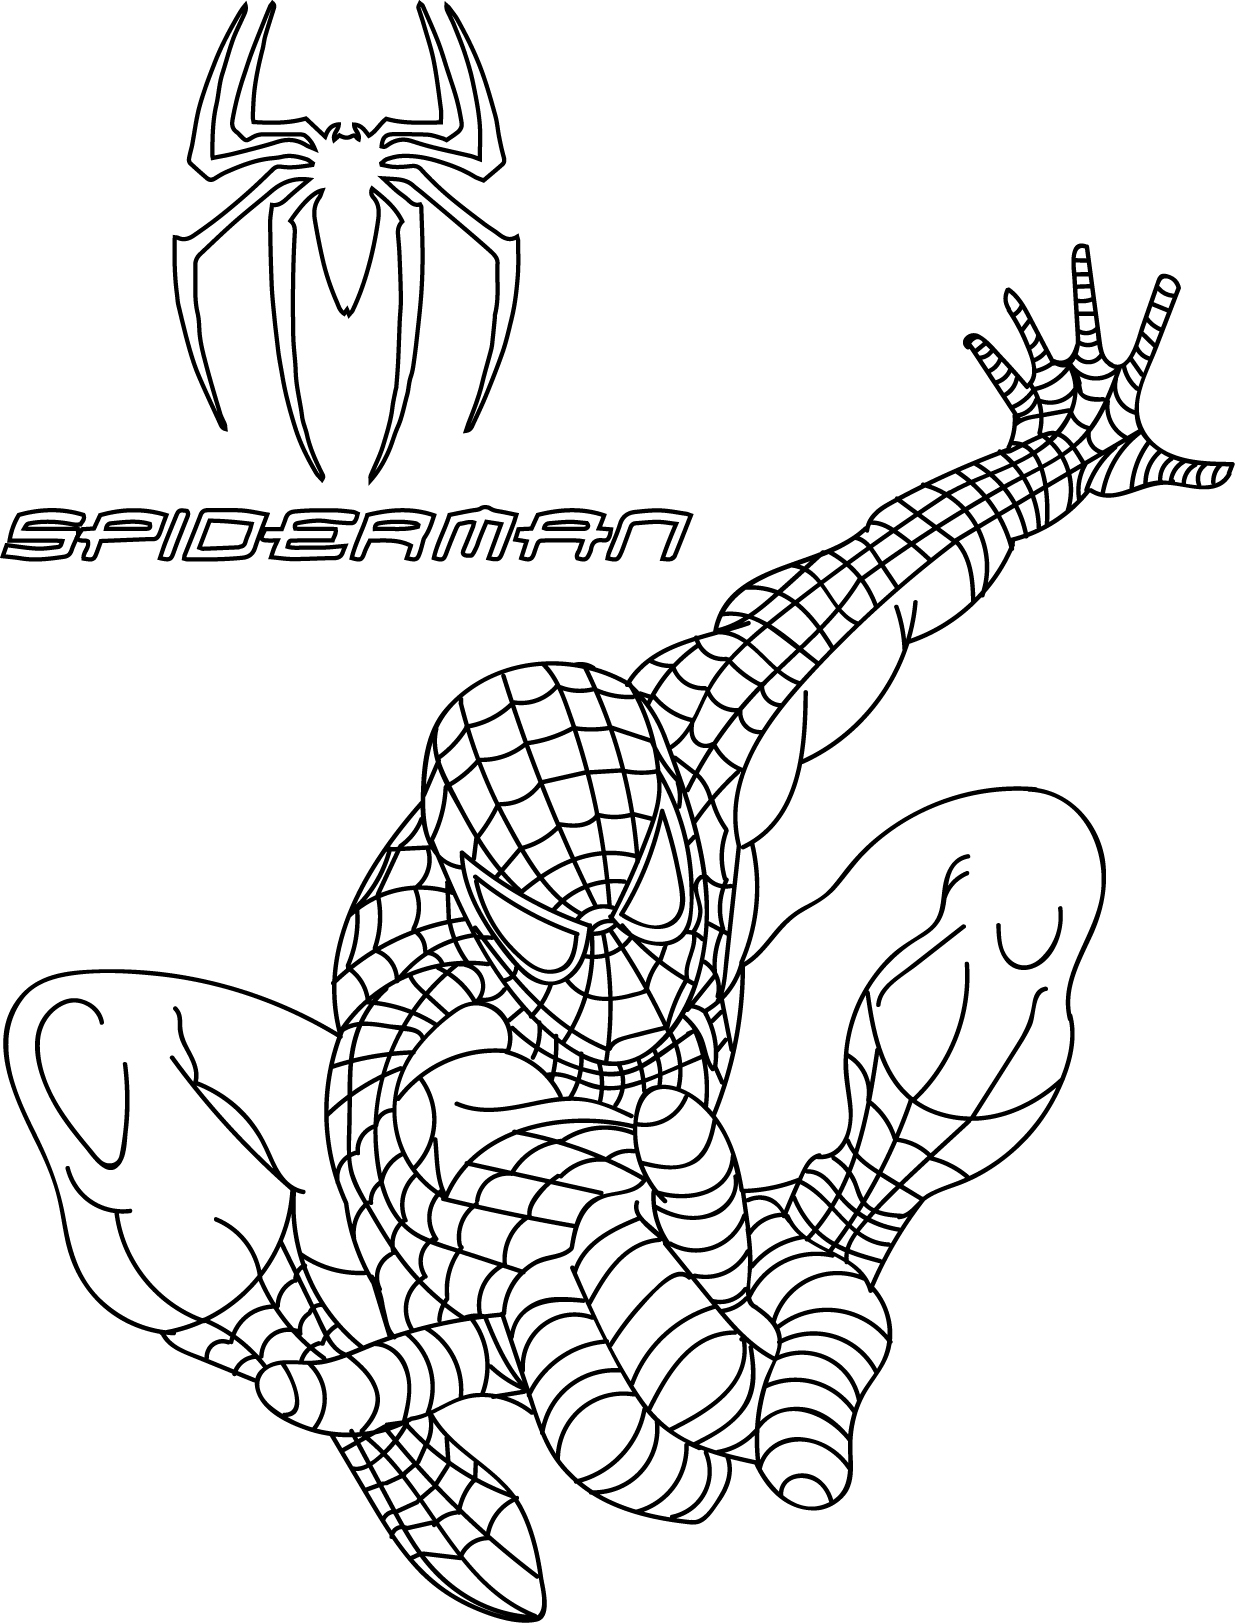 spiderman car coloring pages spiderman and lightning mcqueen with new year 2018 tree spiderman coloring pages car